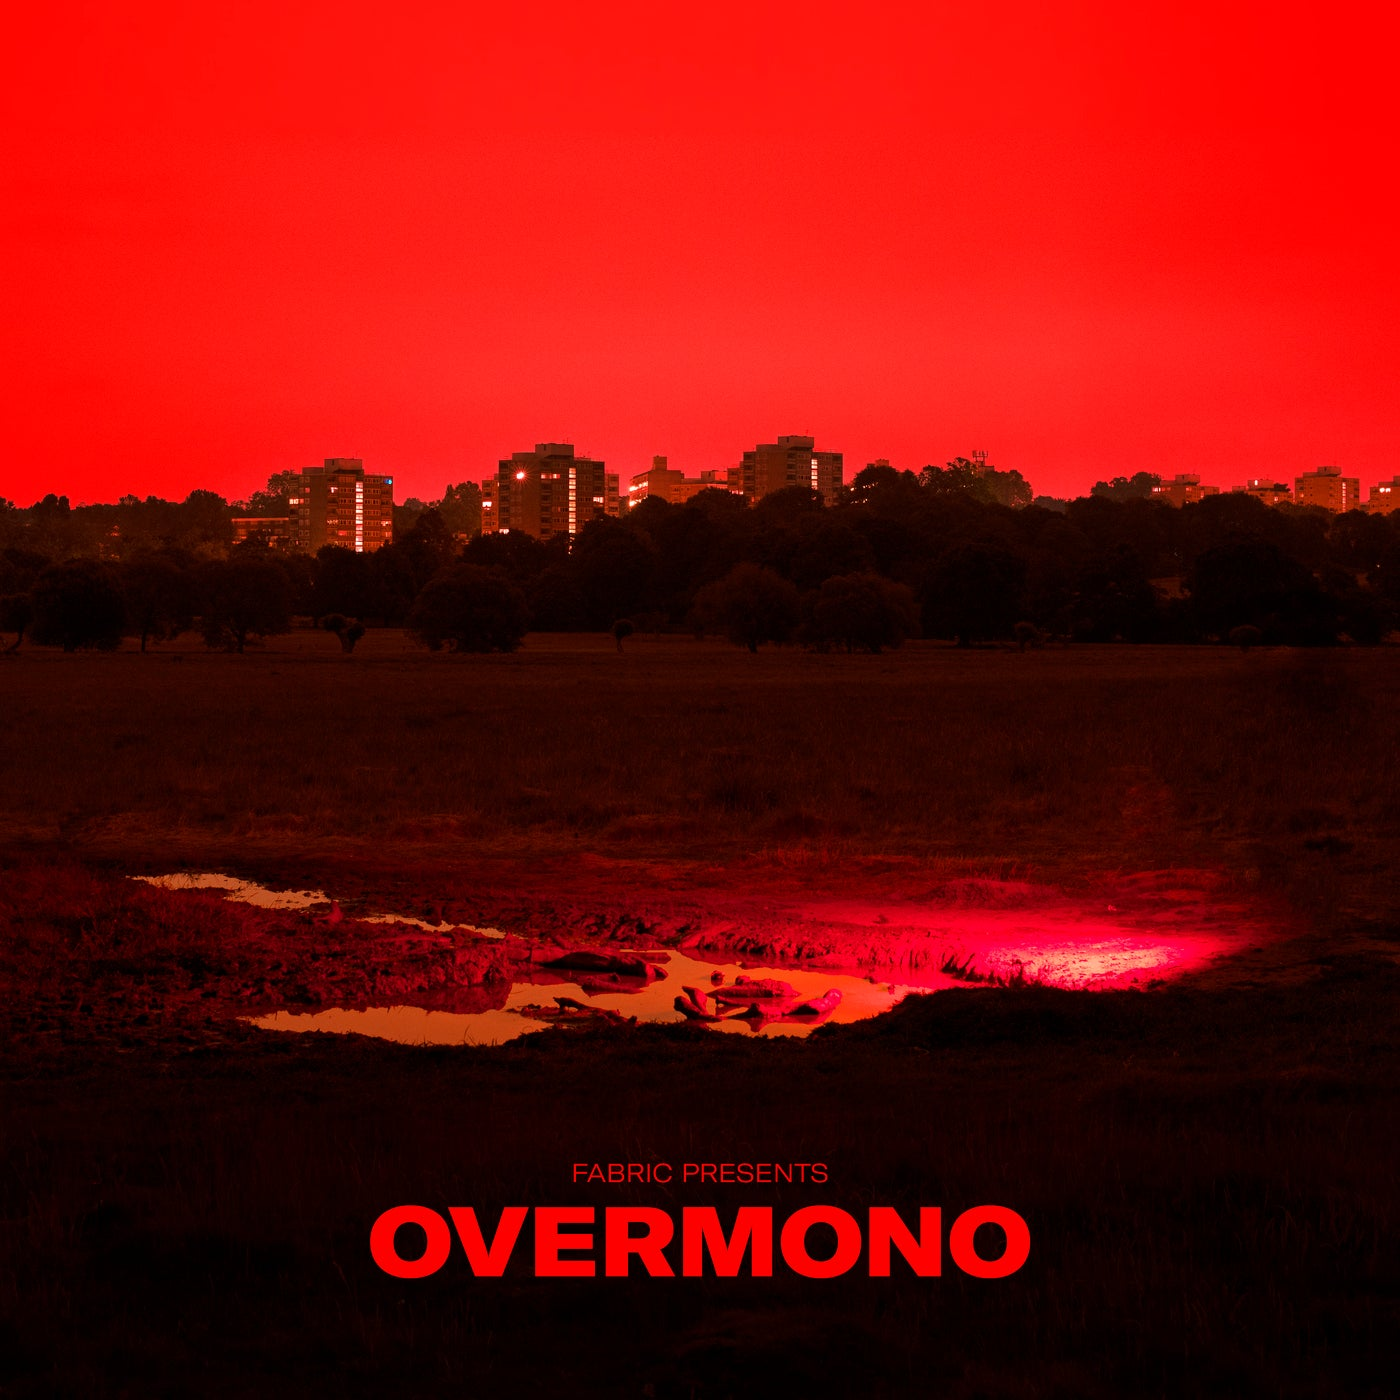 Download fabric presents Overmono on Electrobuzz